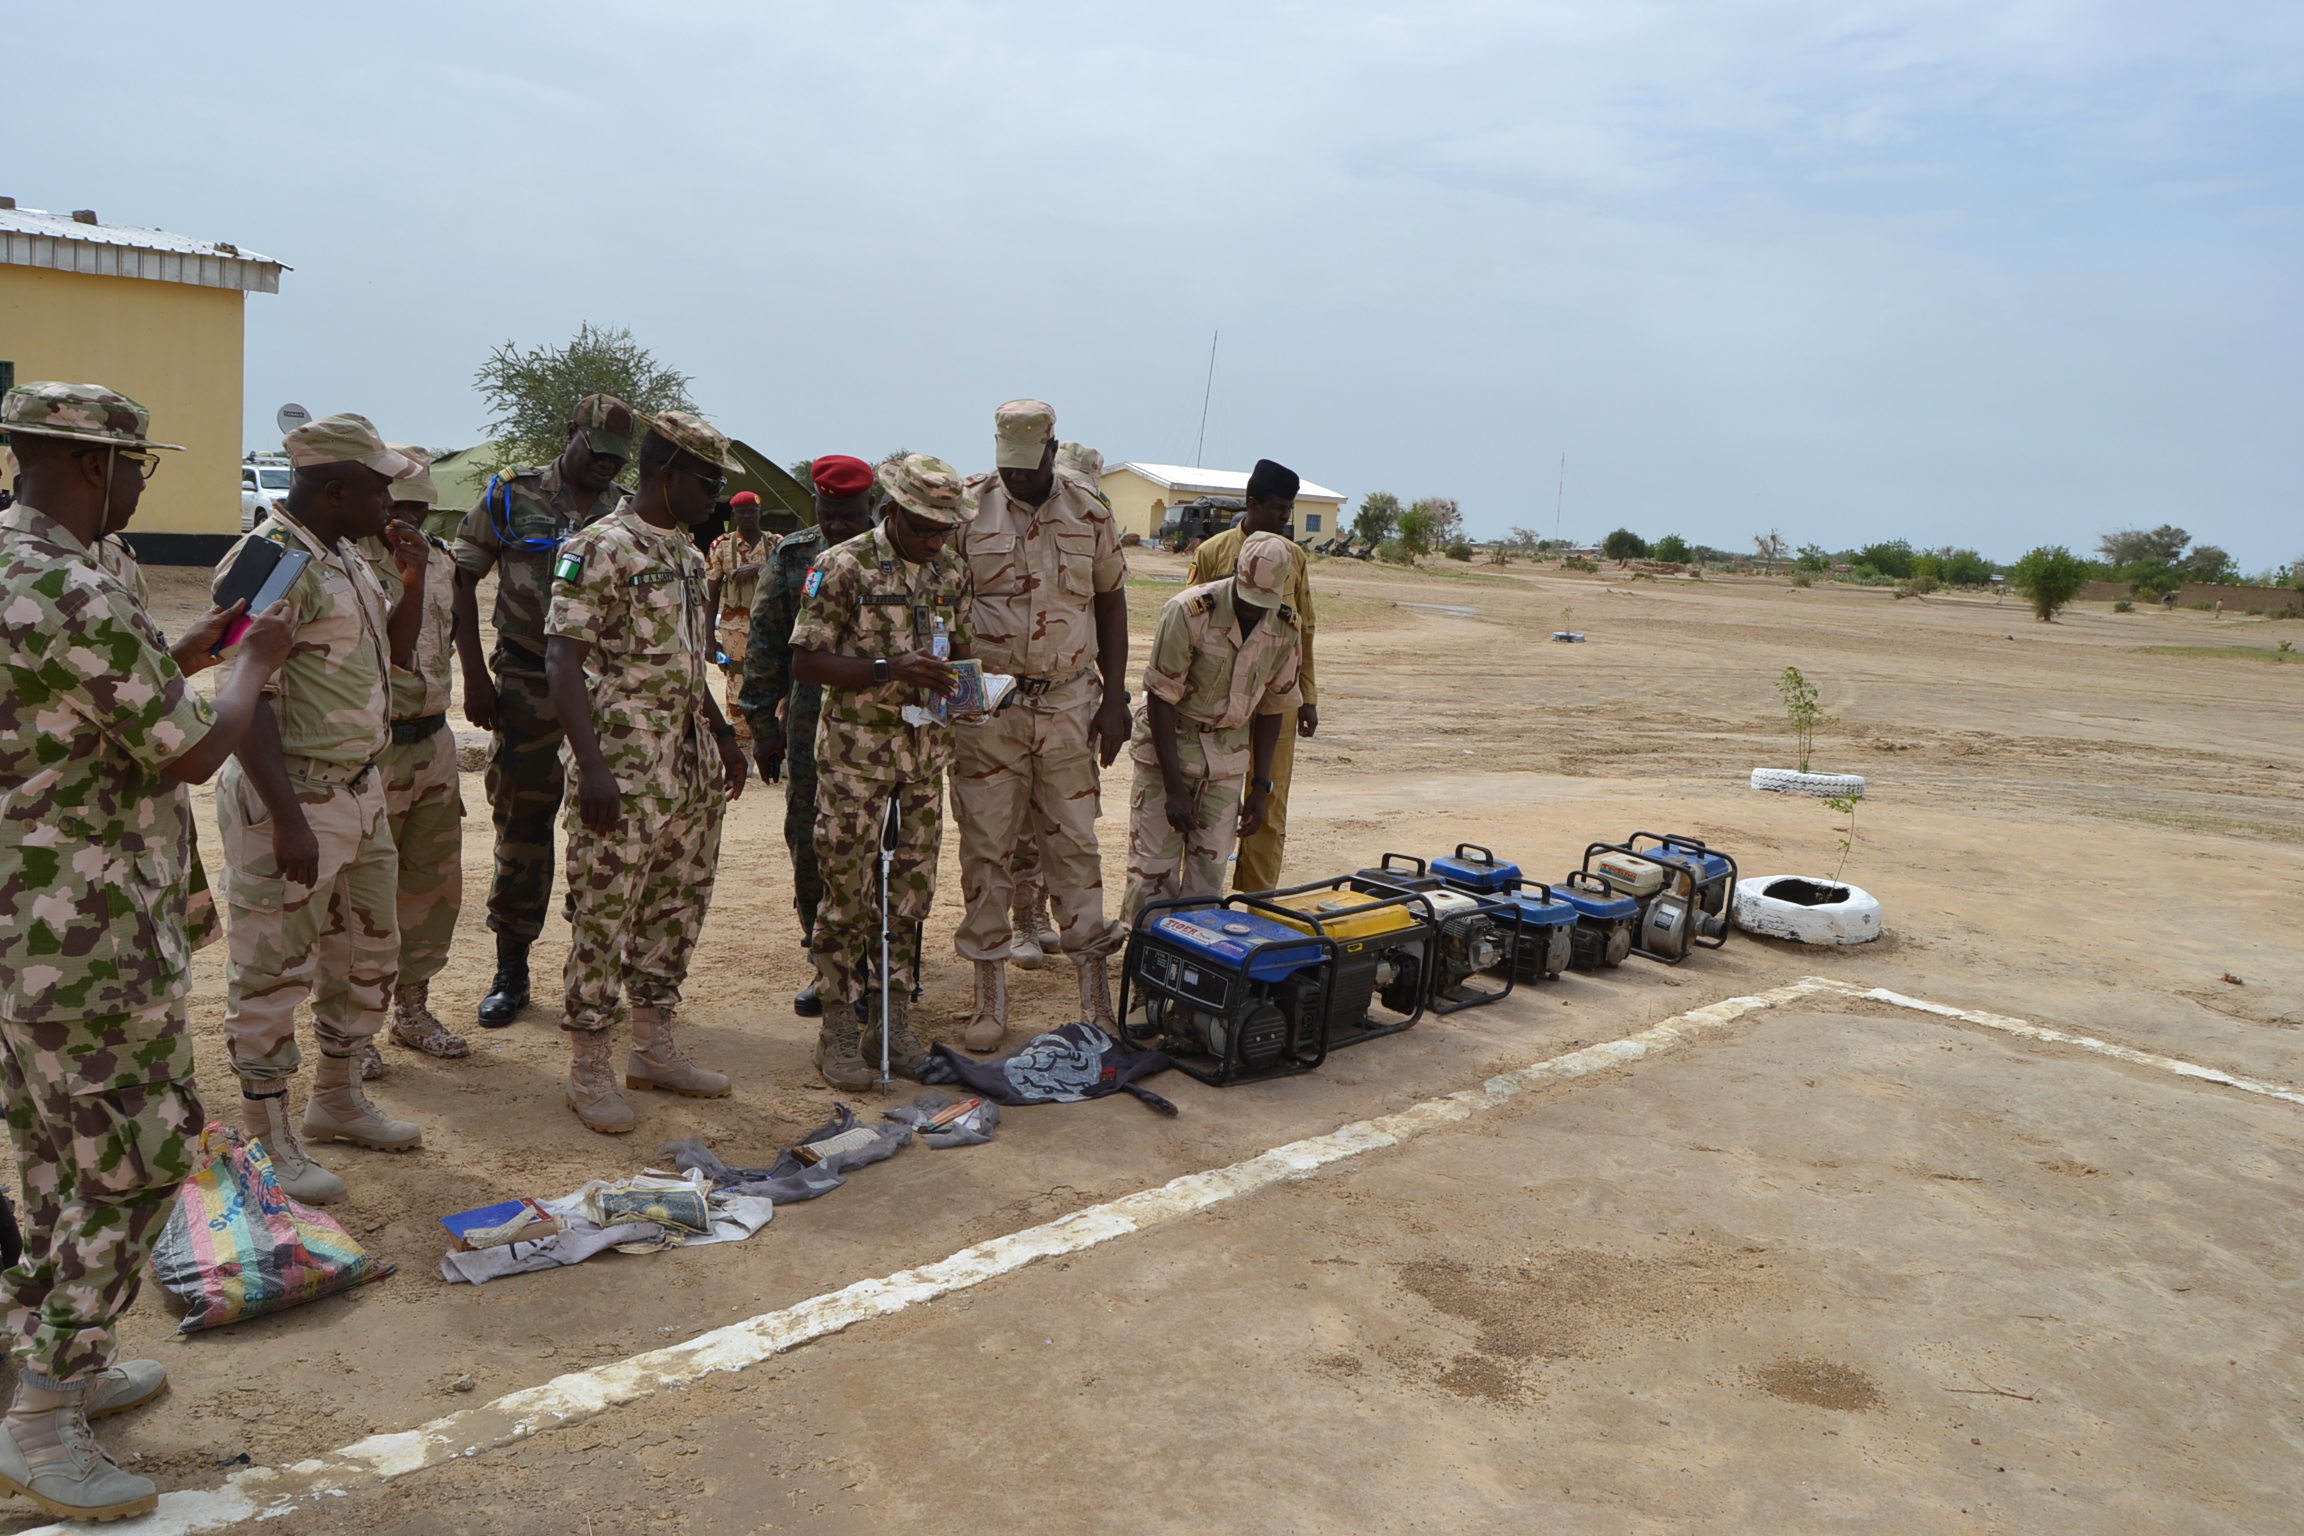 Des officiers de la force mixte multinationale de lutte contre Boko Haram. © Alwihda Info